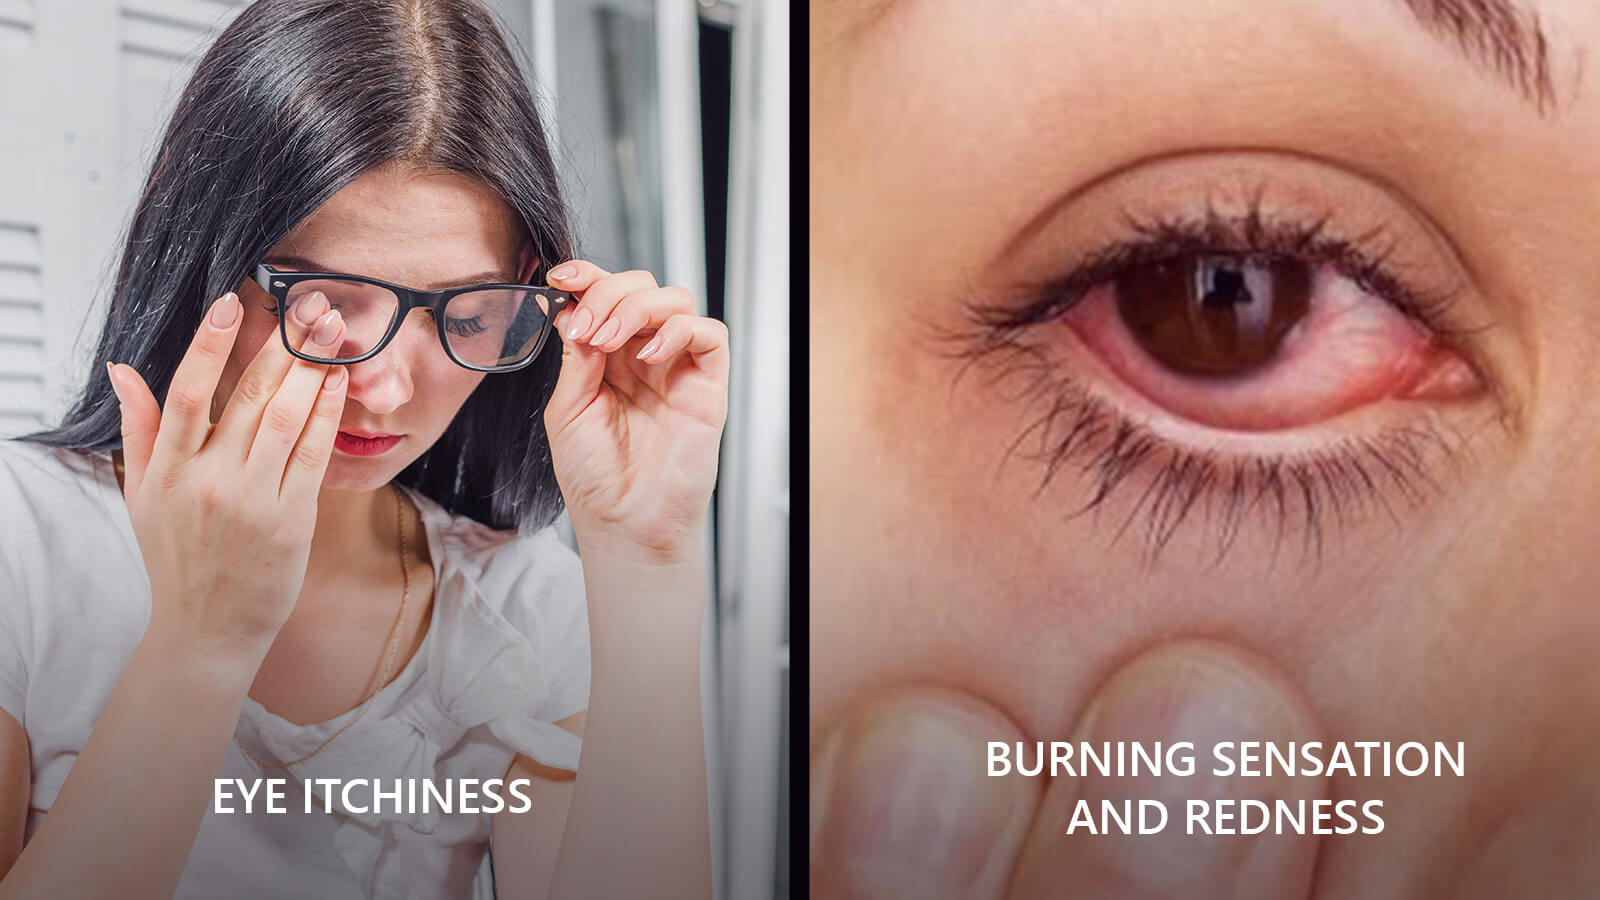 Dry-eye syndrome creates itchiness, burning sensation, redness and often blurred vision in our eyes.